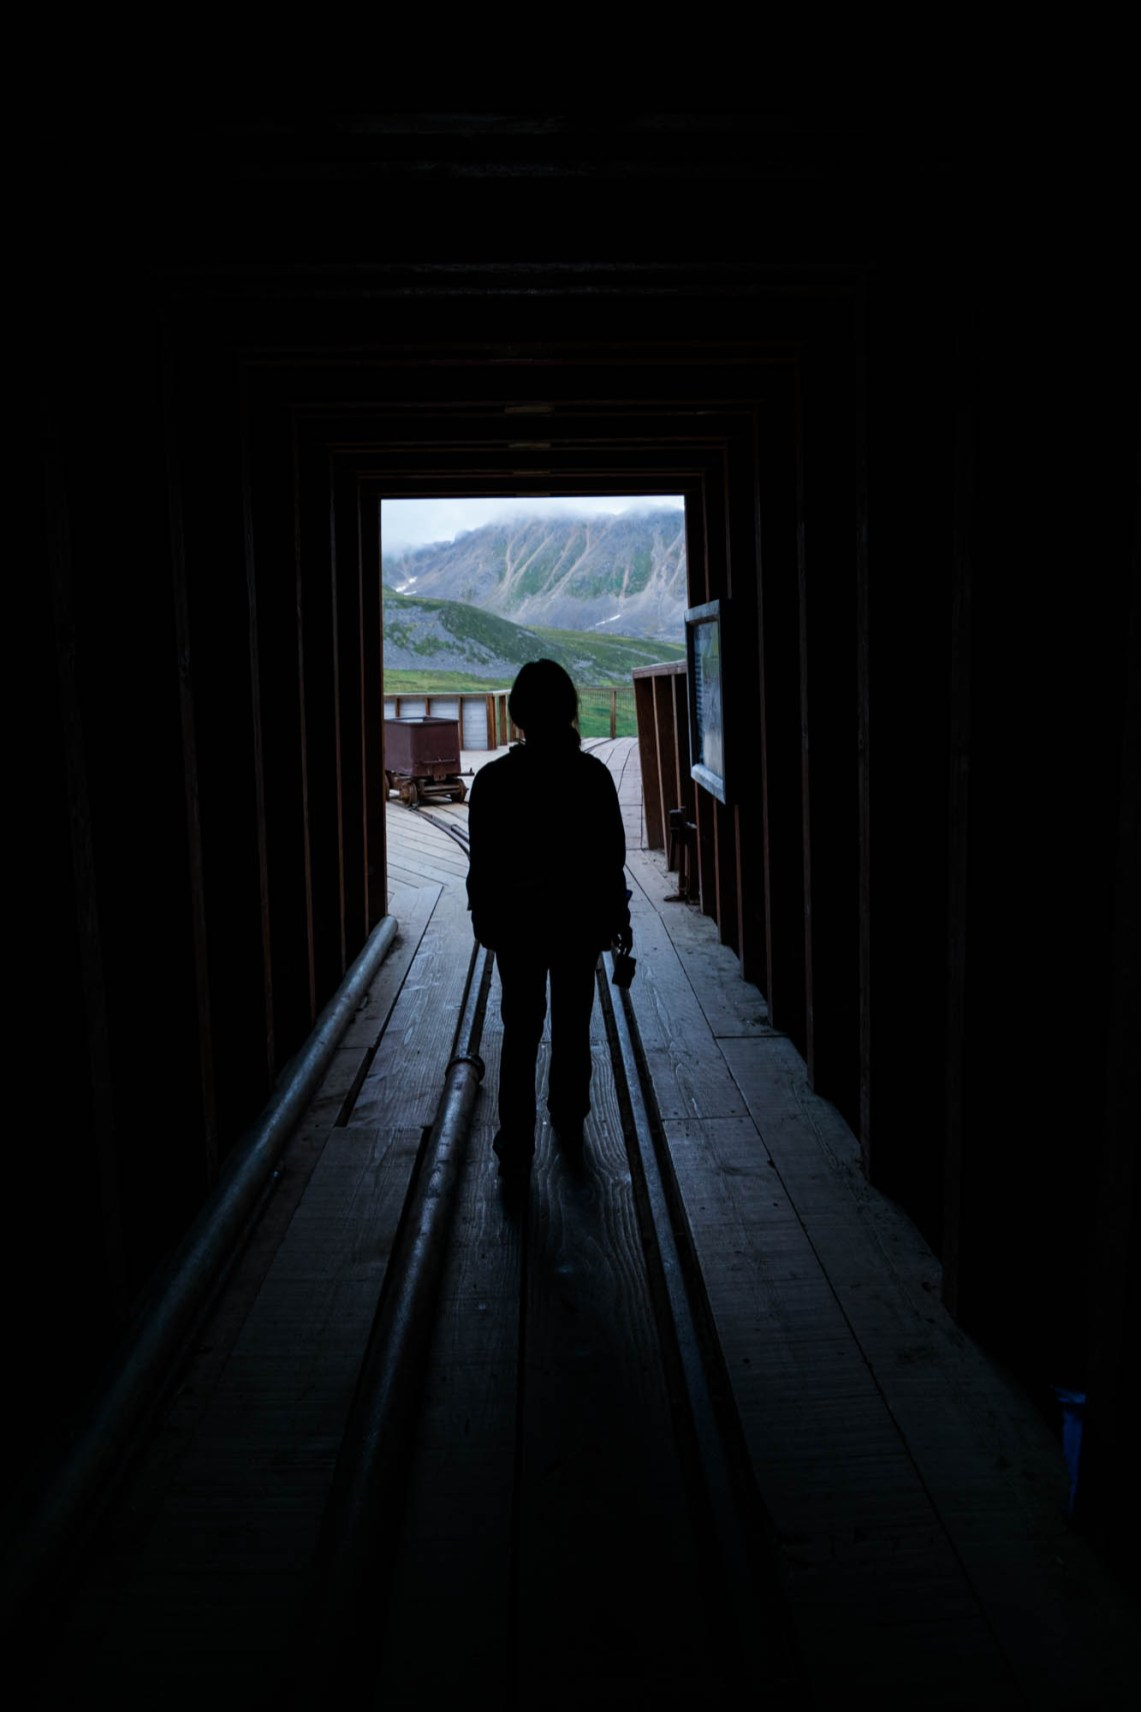 A young woman explores the entrance to an abandoned gold mine in alaska. Her silhouette is seen among a backdrop of mountains and rail tracks